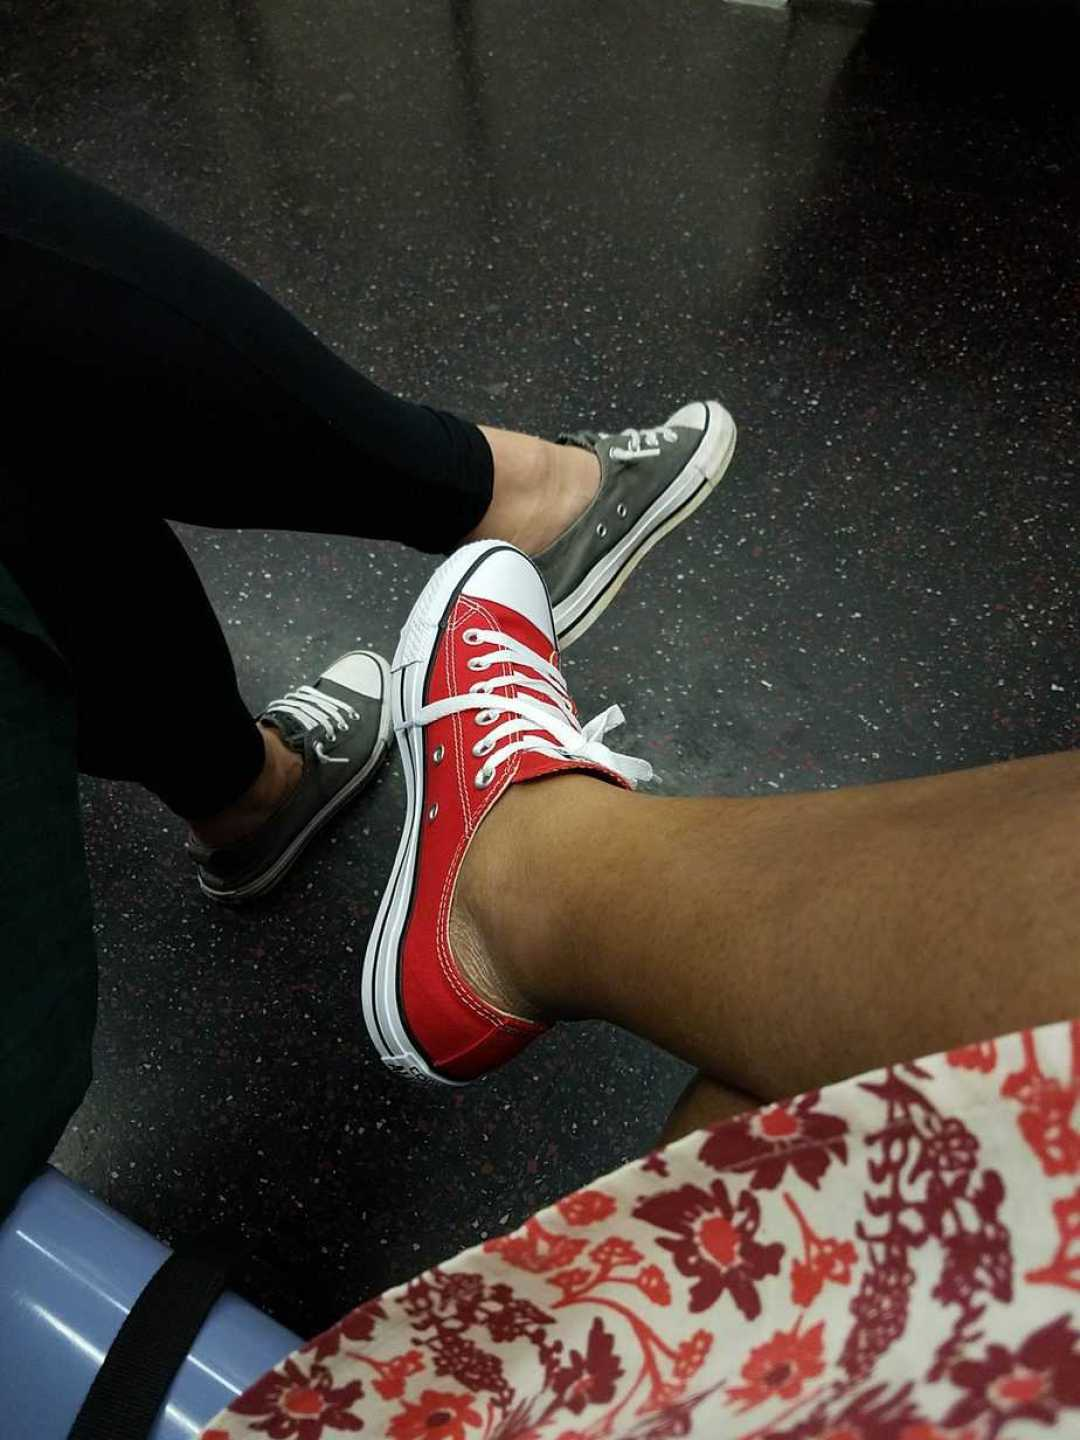 Photo of Chuck Taylors - Converse. One red, one gray